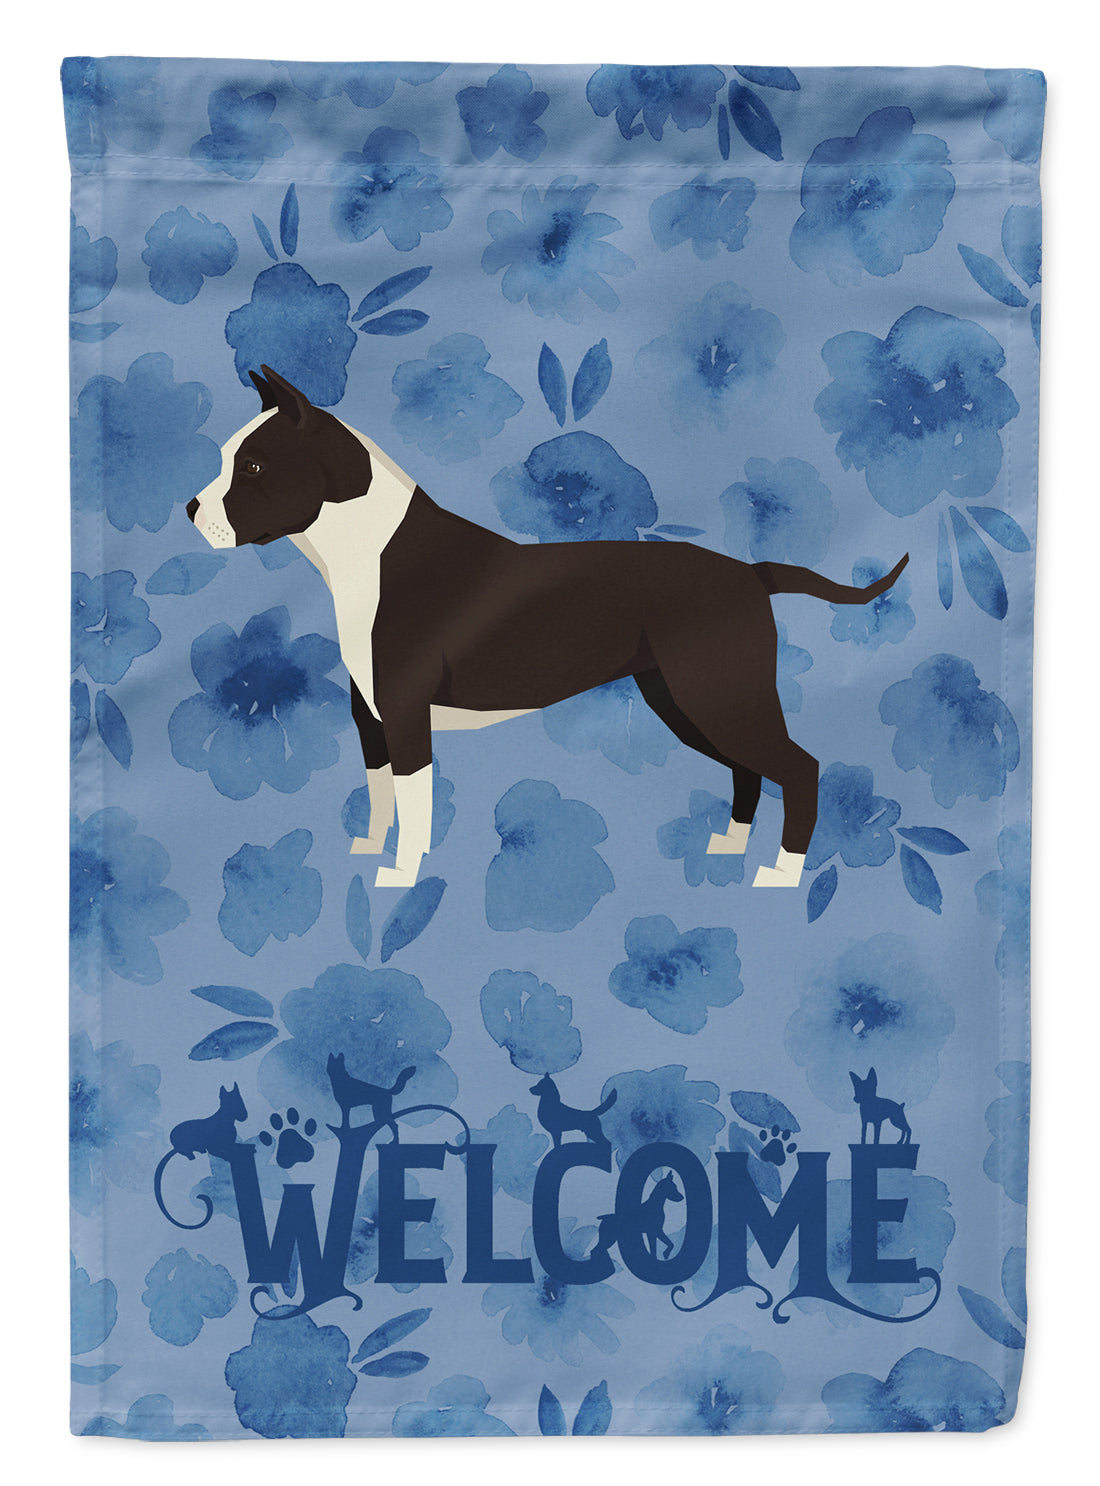 American Staffordshire Terrier Welcome Flag Garden Size CK6219GF by Caroline's Treasures